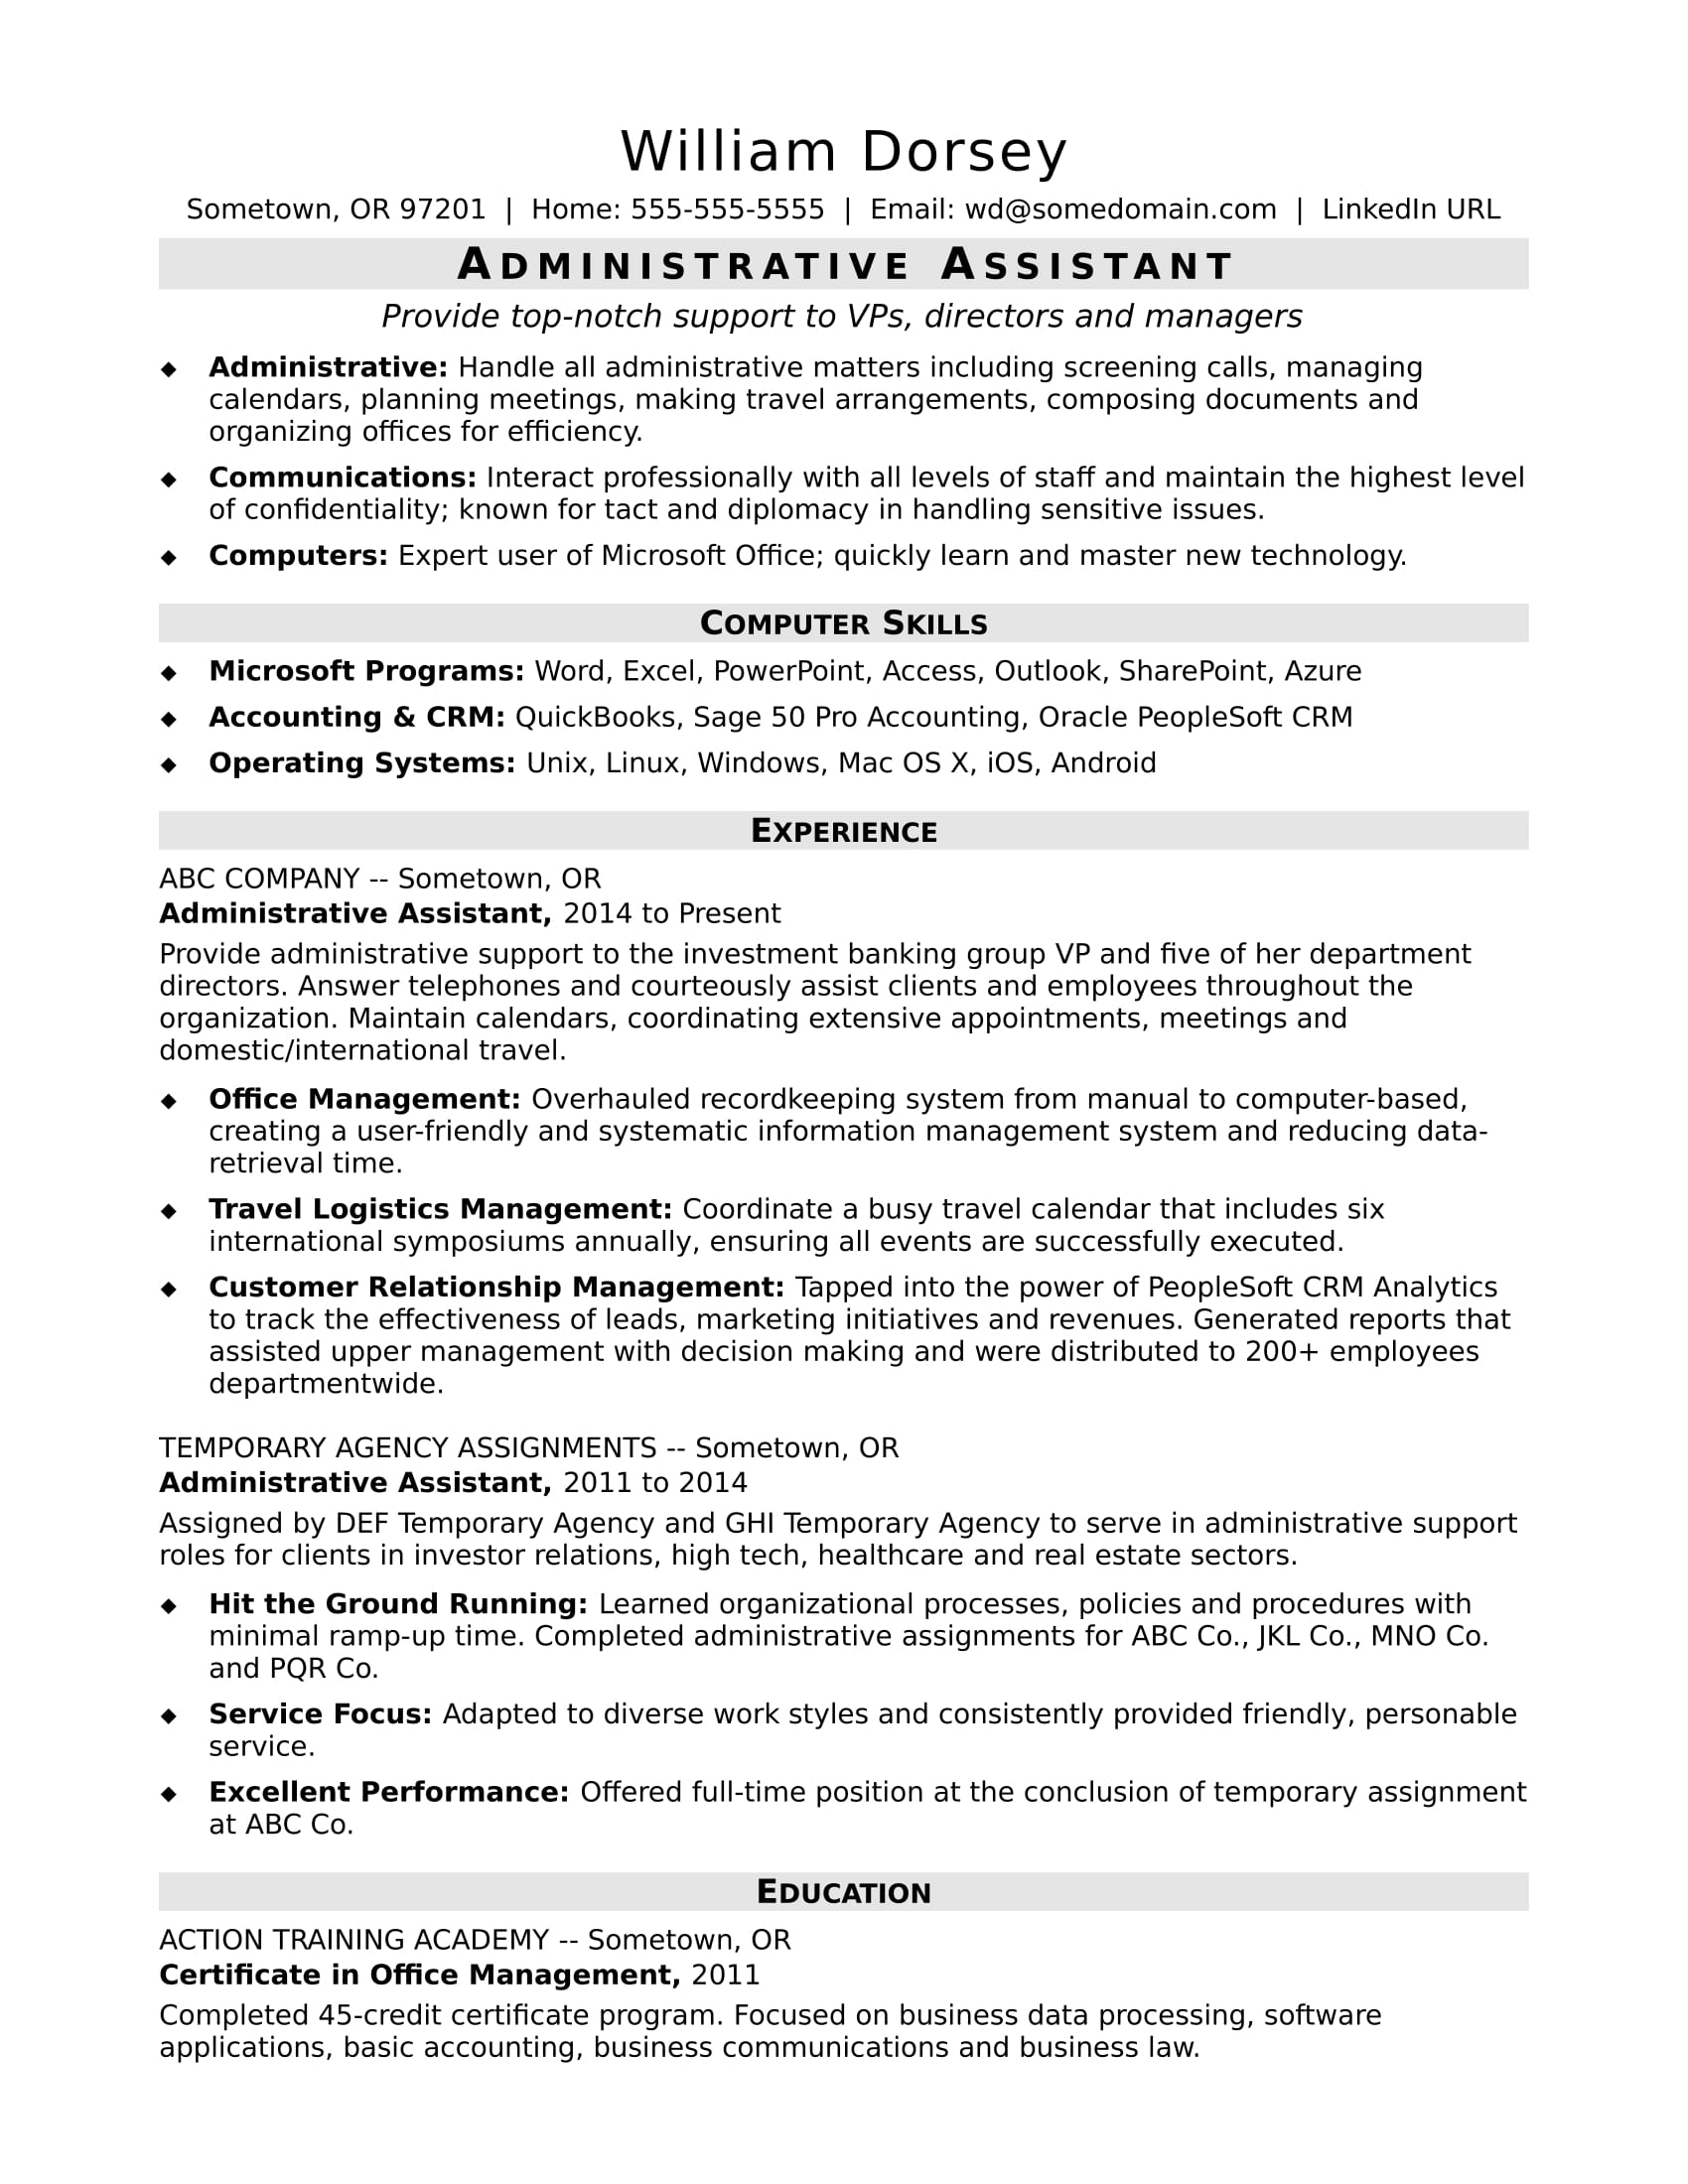 sample resume for a midlevel administrative assistant - Sample Administrative Resume